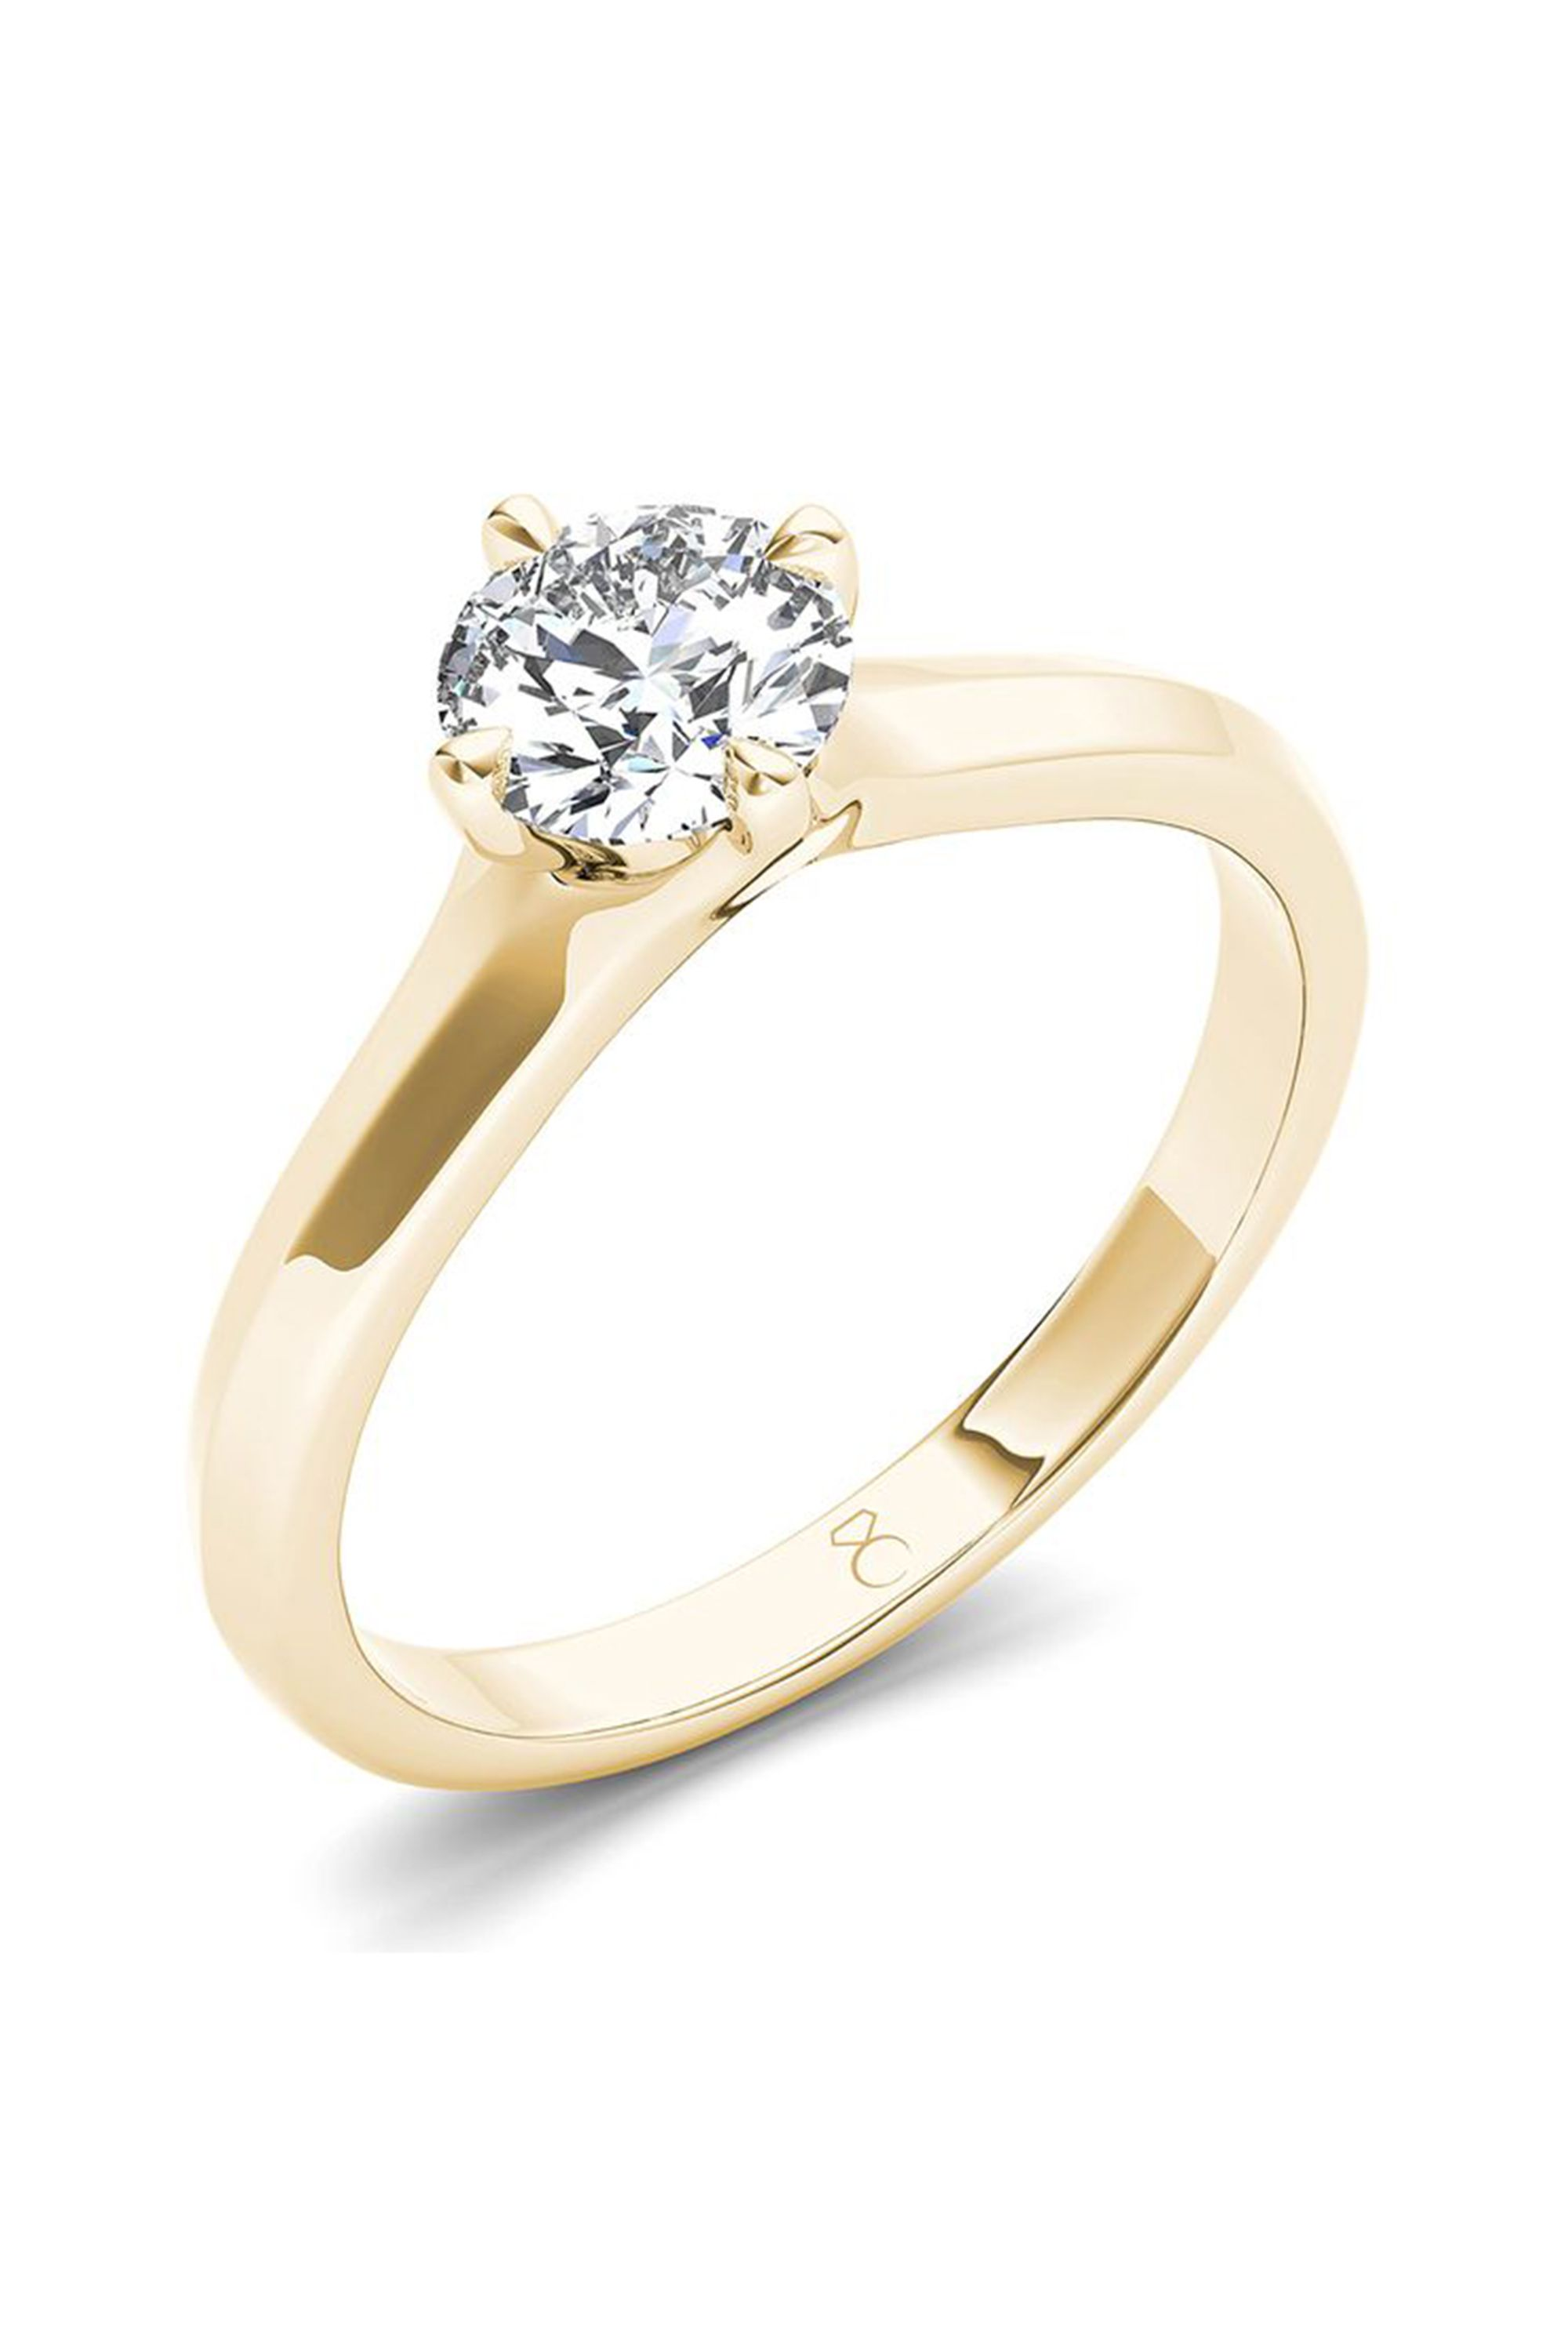 Our guide to the best engagement rings - designer and